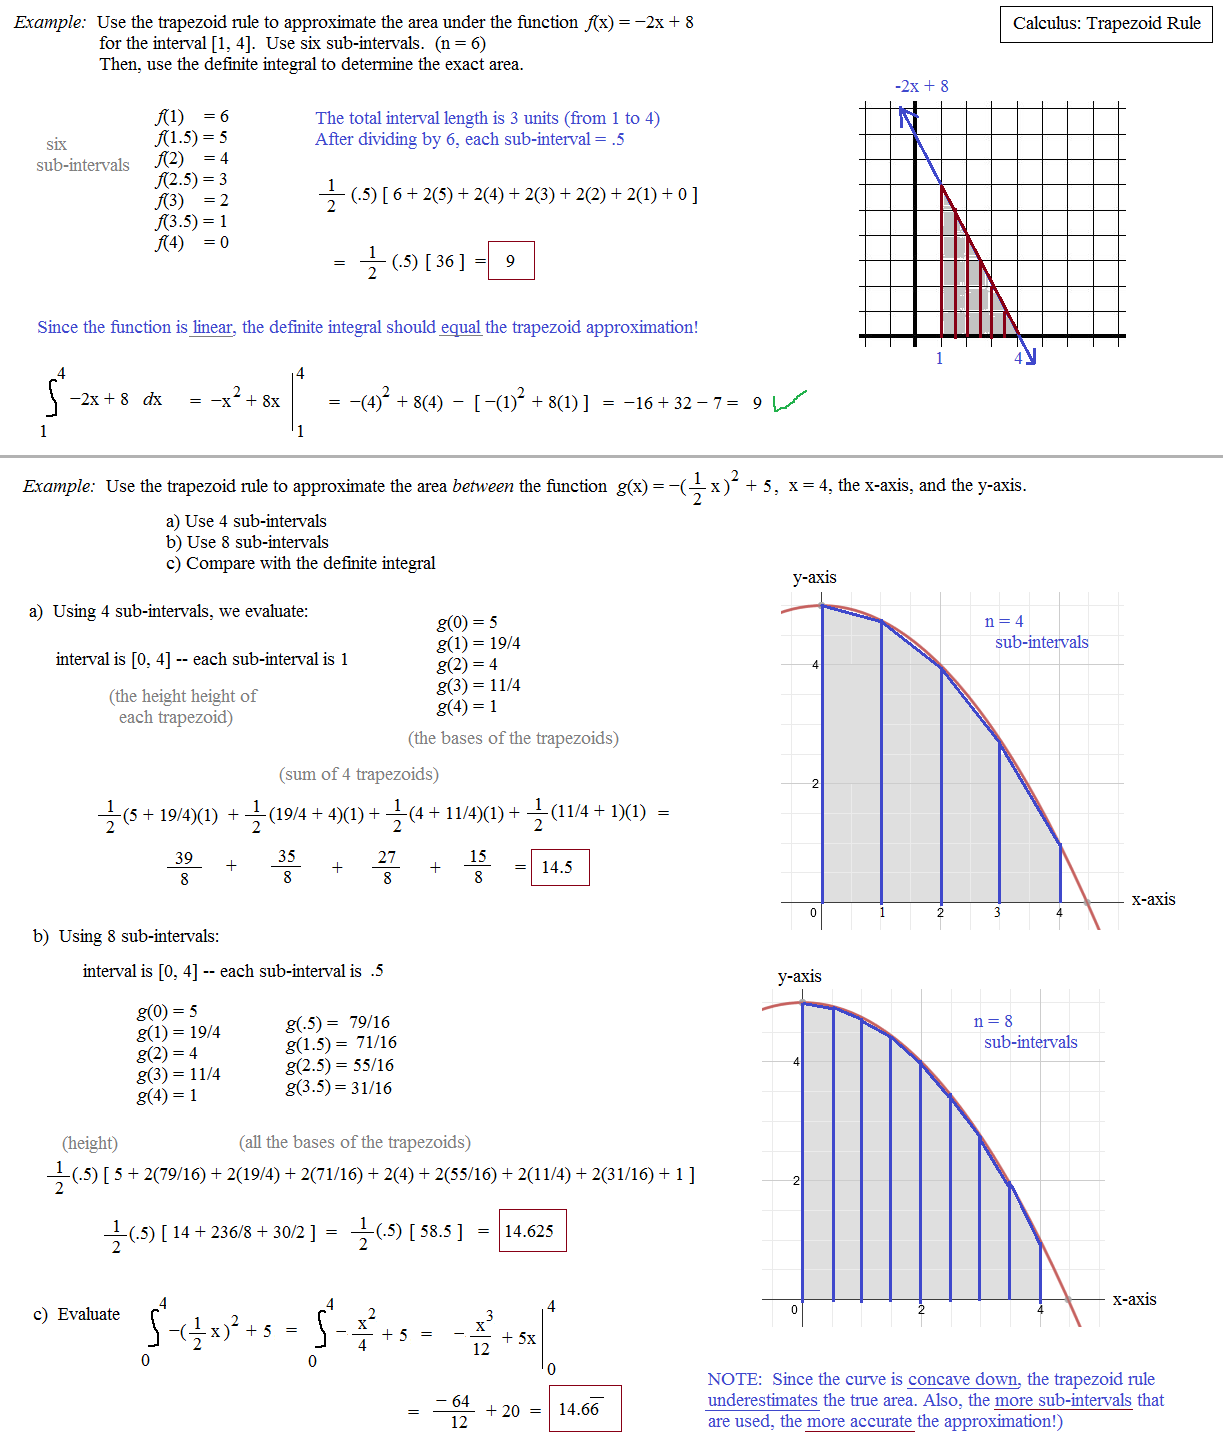 Download Free Complete Calculus Trapezoid Rule .pdf file